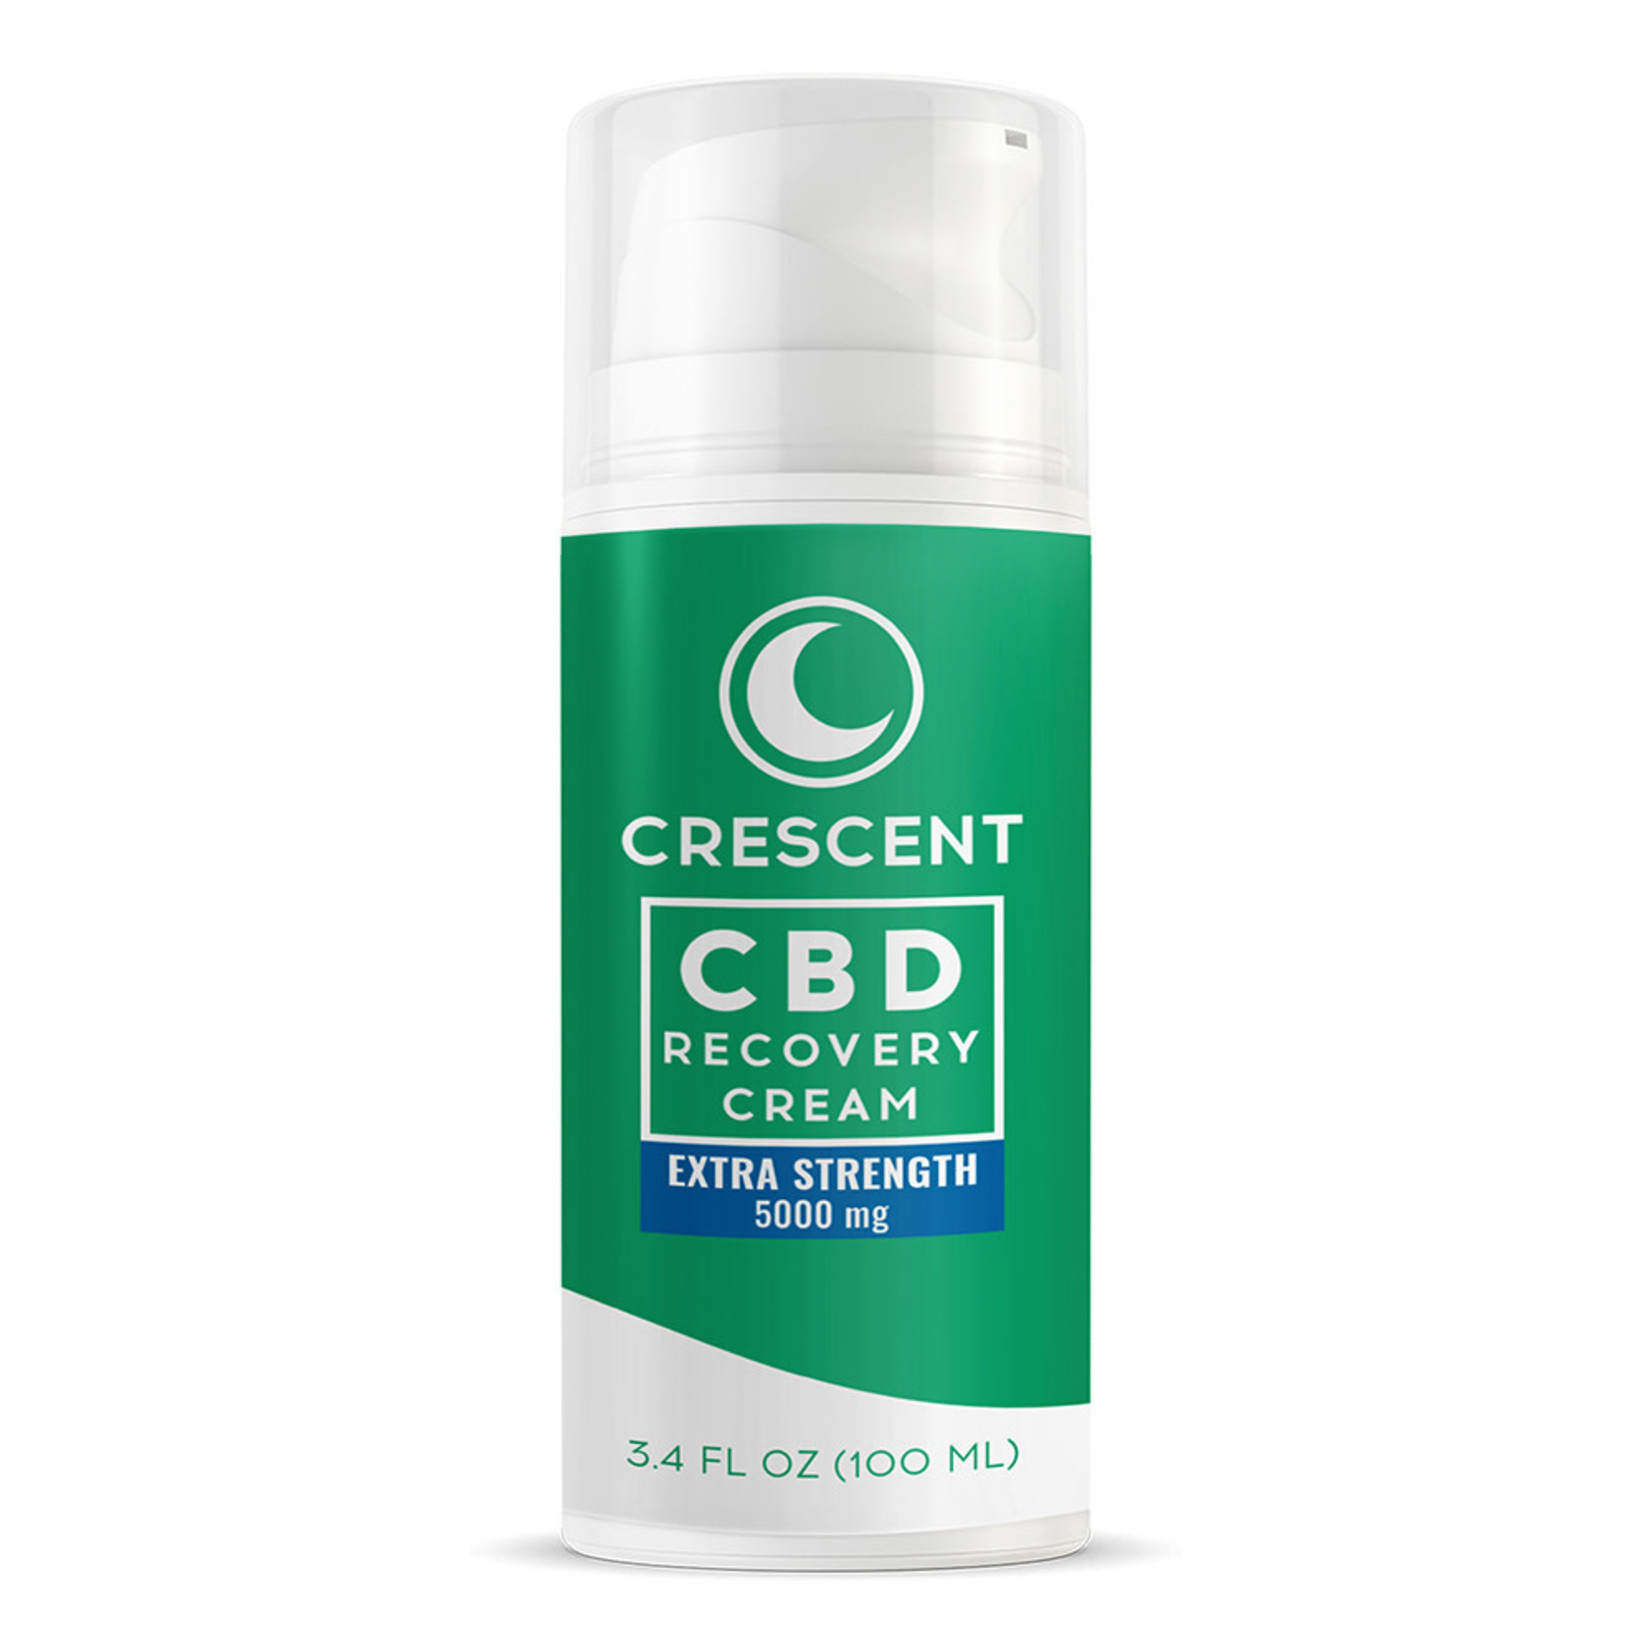 Crescent Canna CBD Topical Pain Recovery Creme 5000mg 3.4oz pump